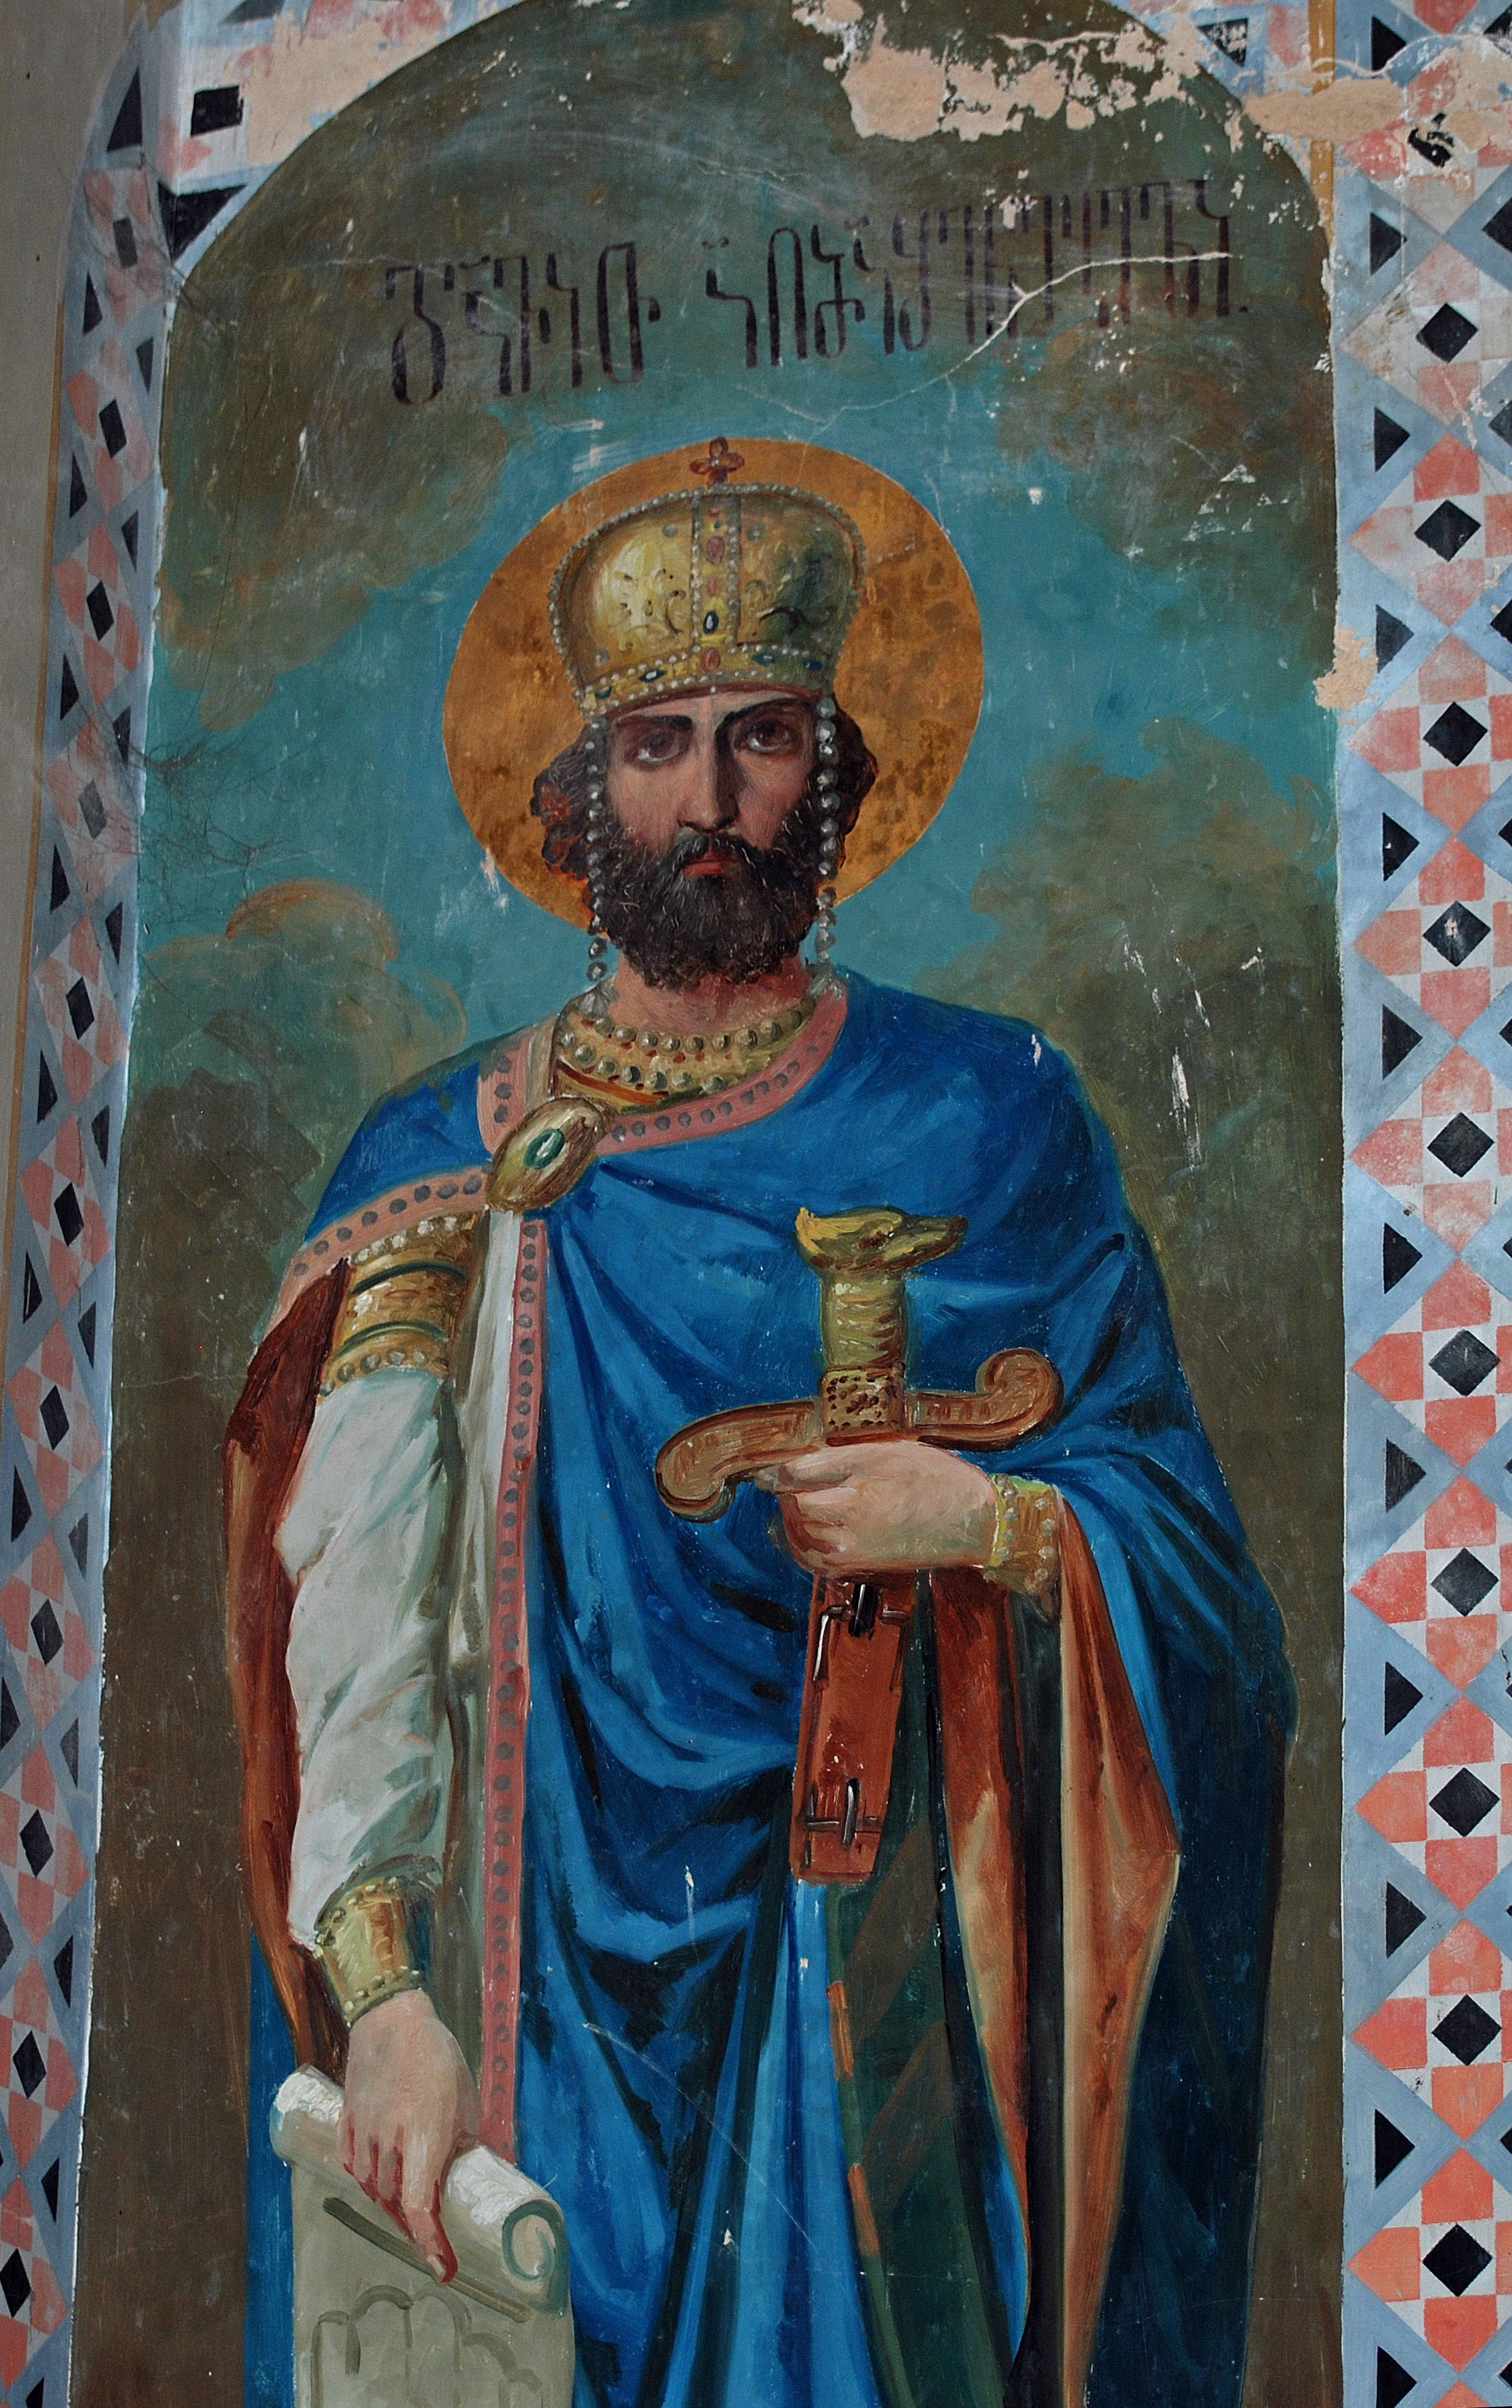 King David the Builder, Shio-Mghvime monastery